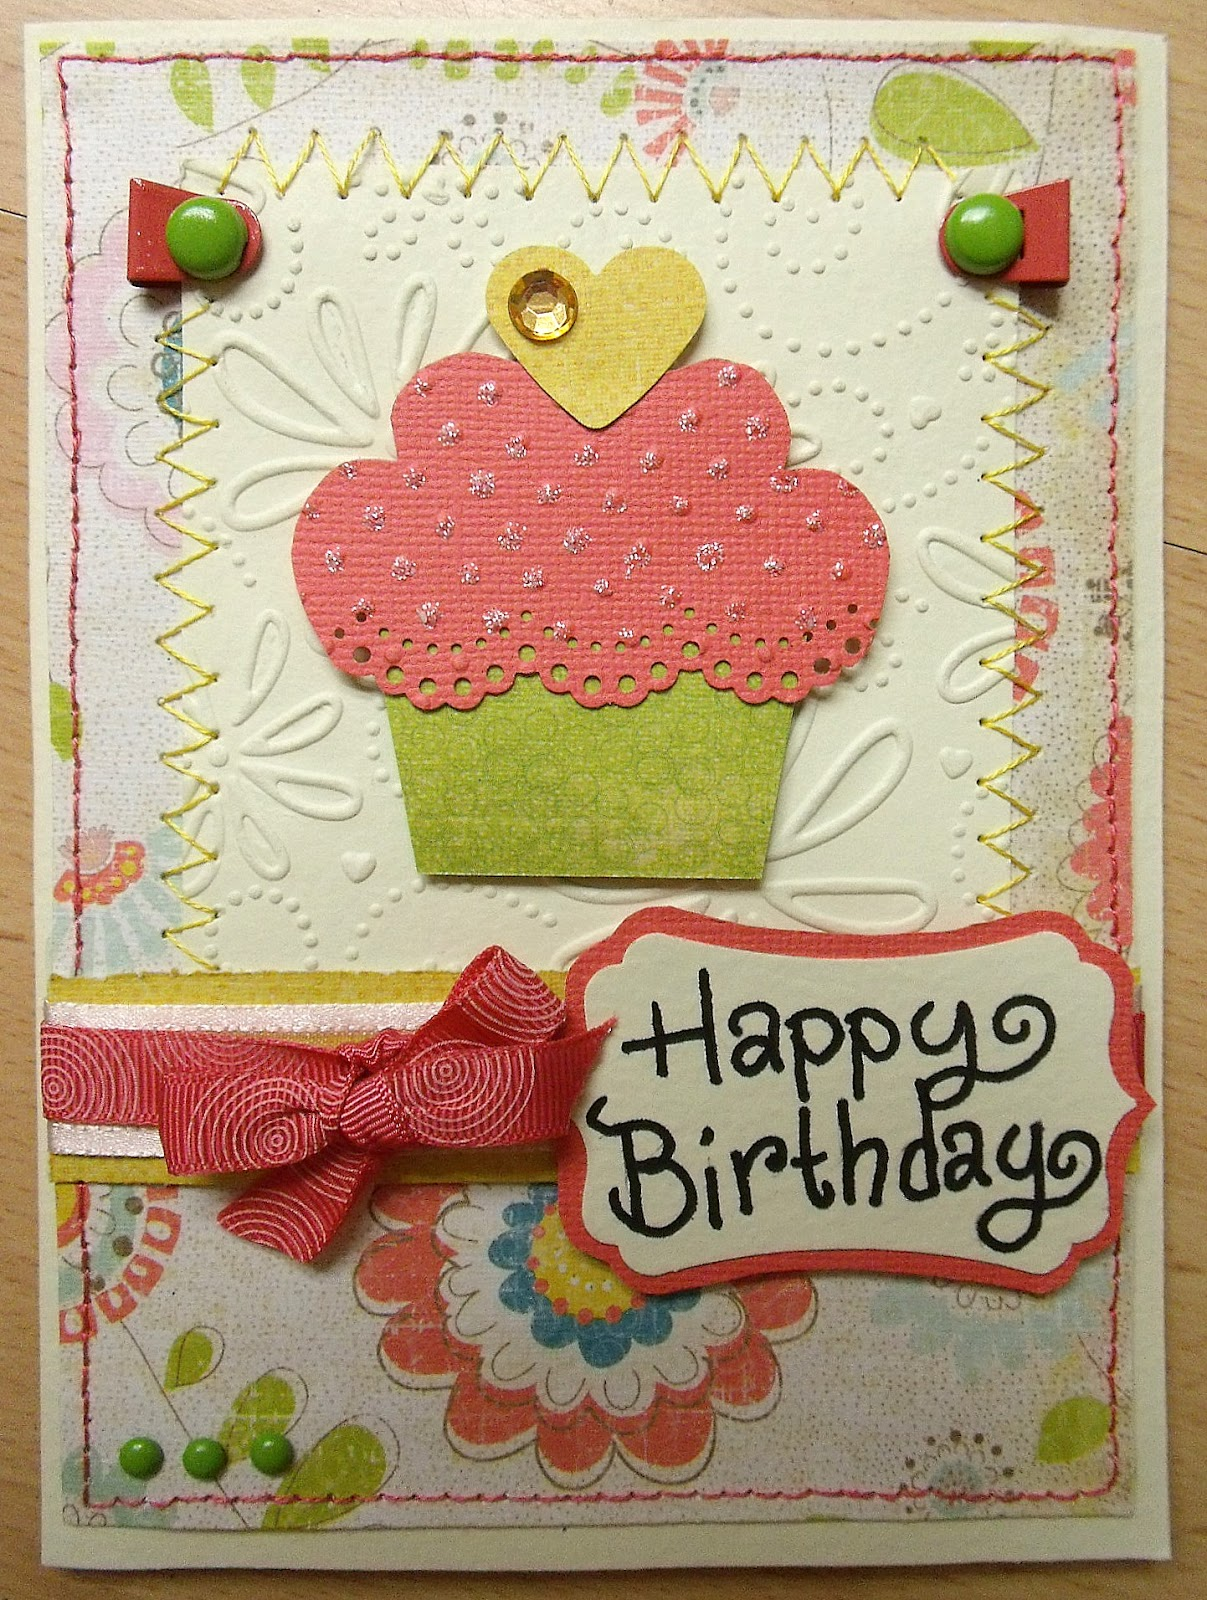 ... that today, creating a cute birthday card perfect for the occasion